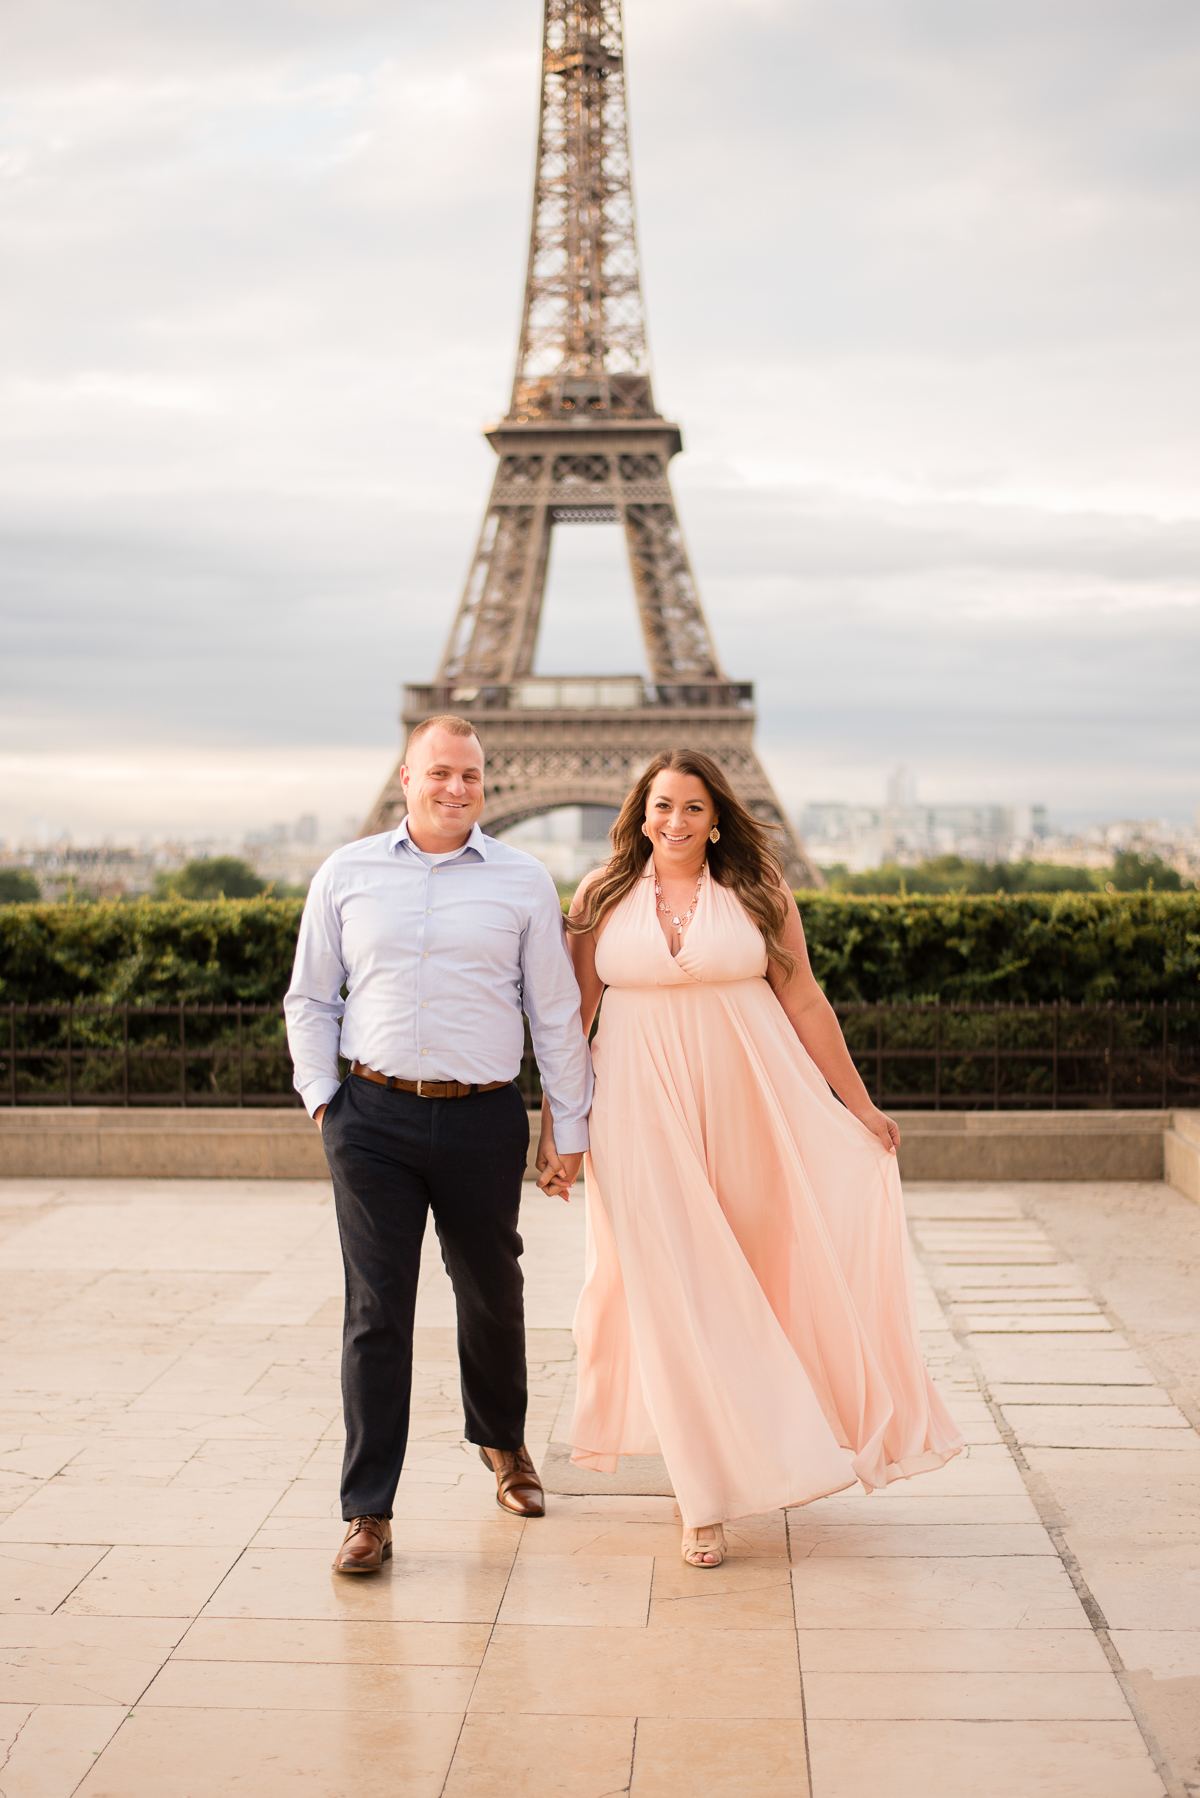 Romantic-Parisian-Photo-Session-Eiffel-Tower-Photographers,-Katie-Donnelly-Photography_001.jpg